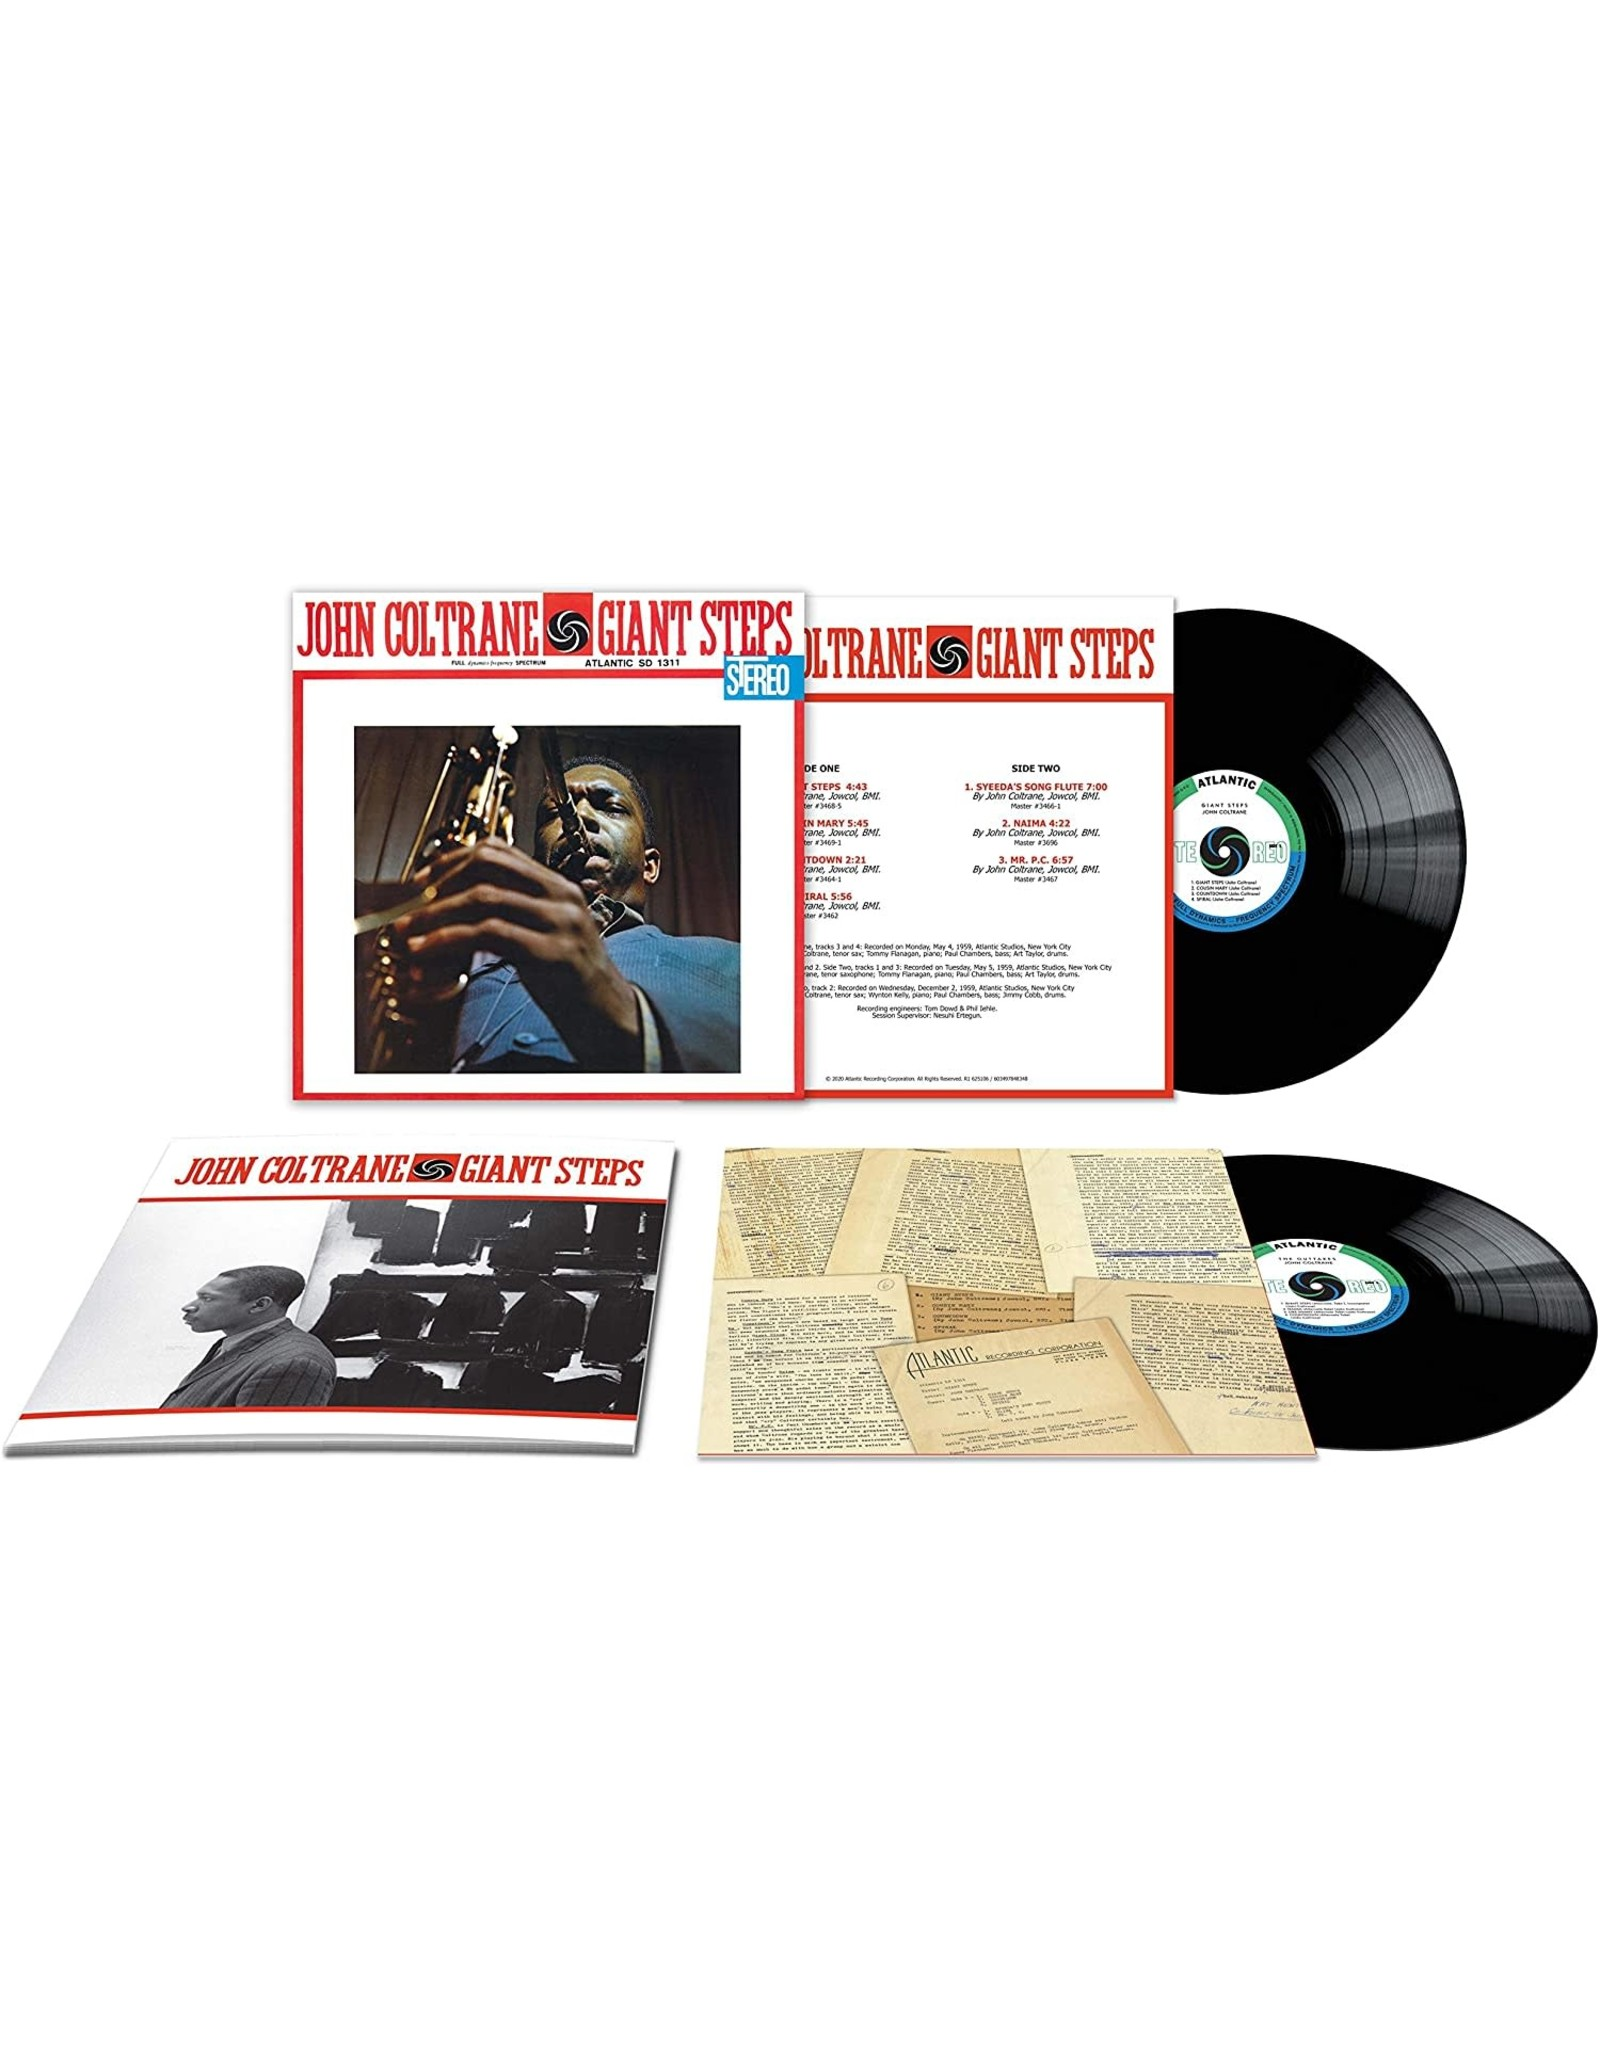 John Coltrane - Giant Steps (60th Anniversary) [Deluxe Edition]